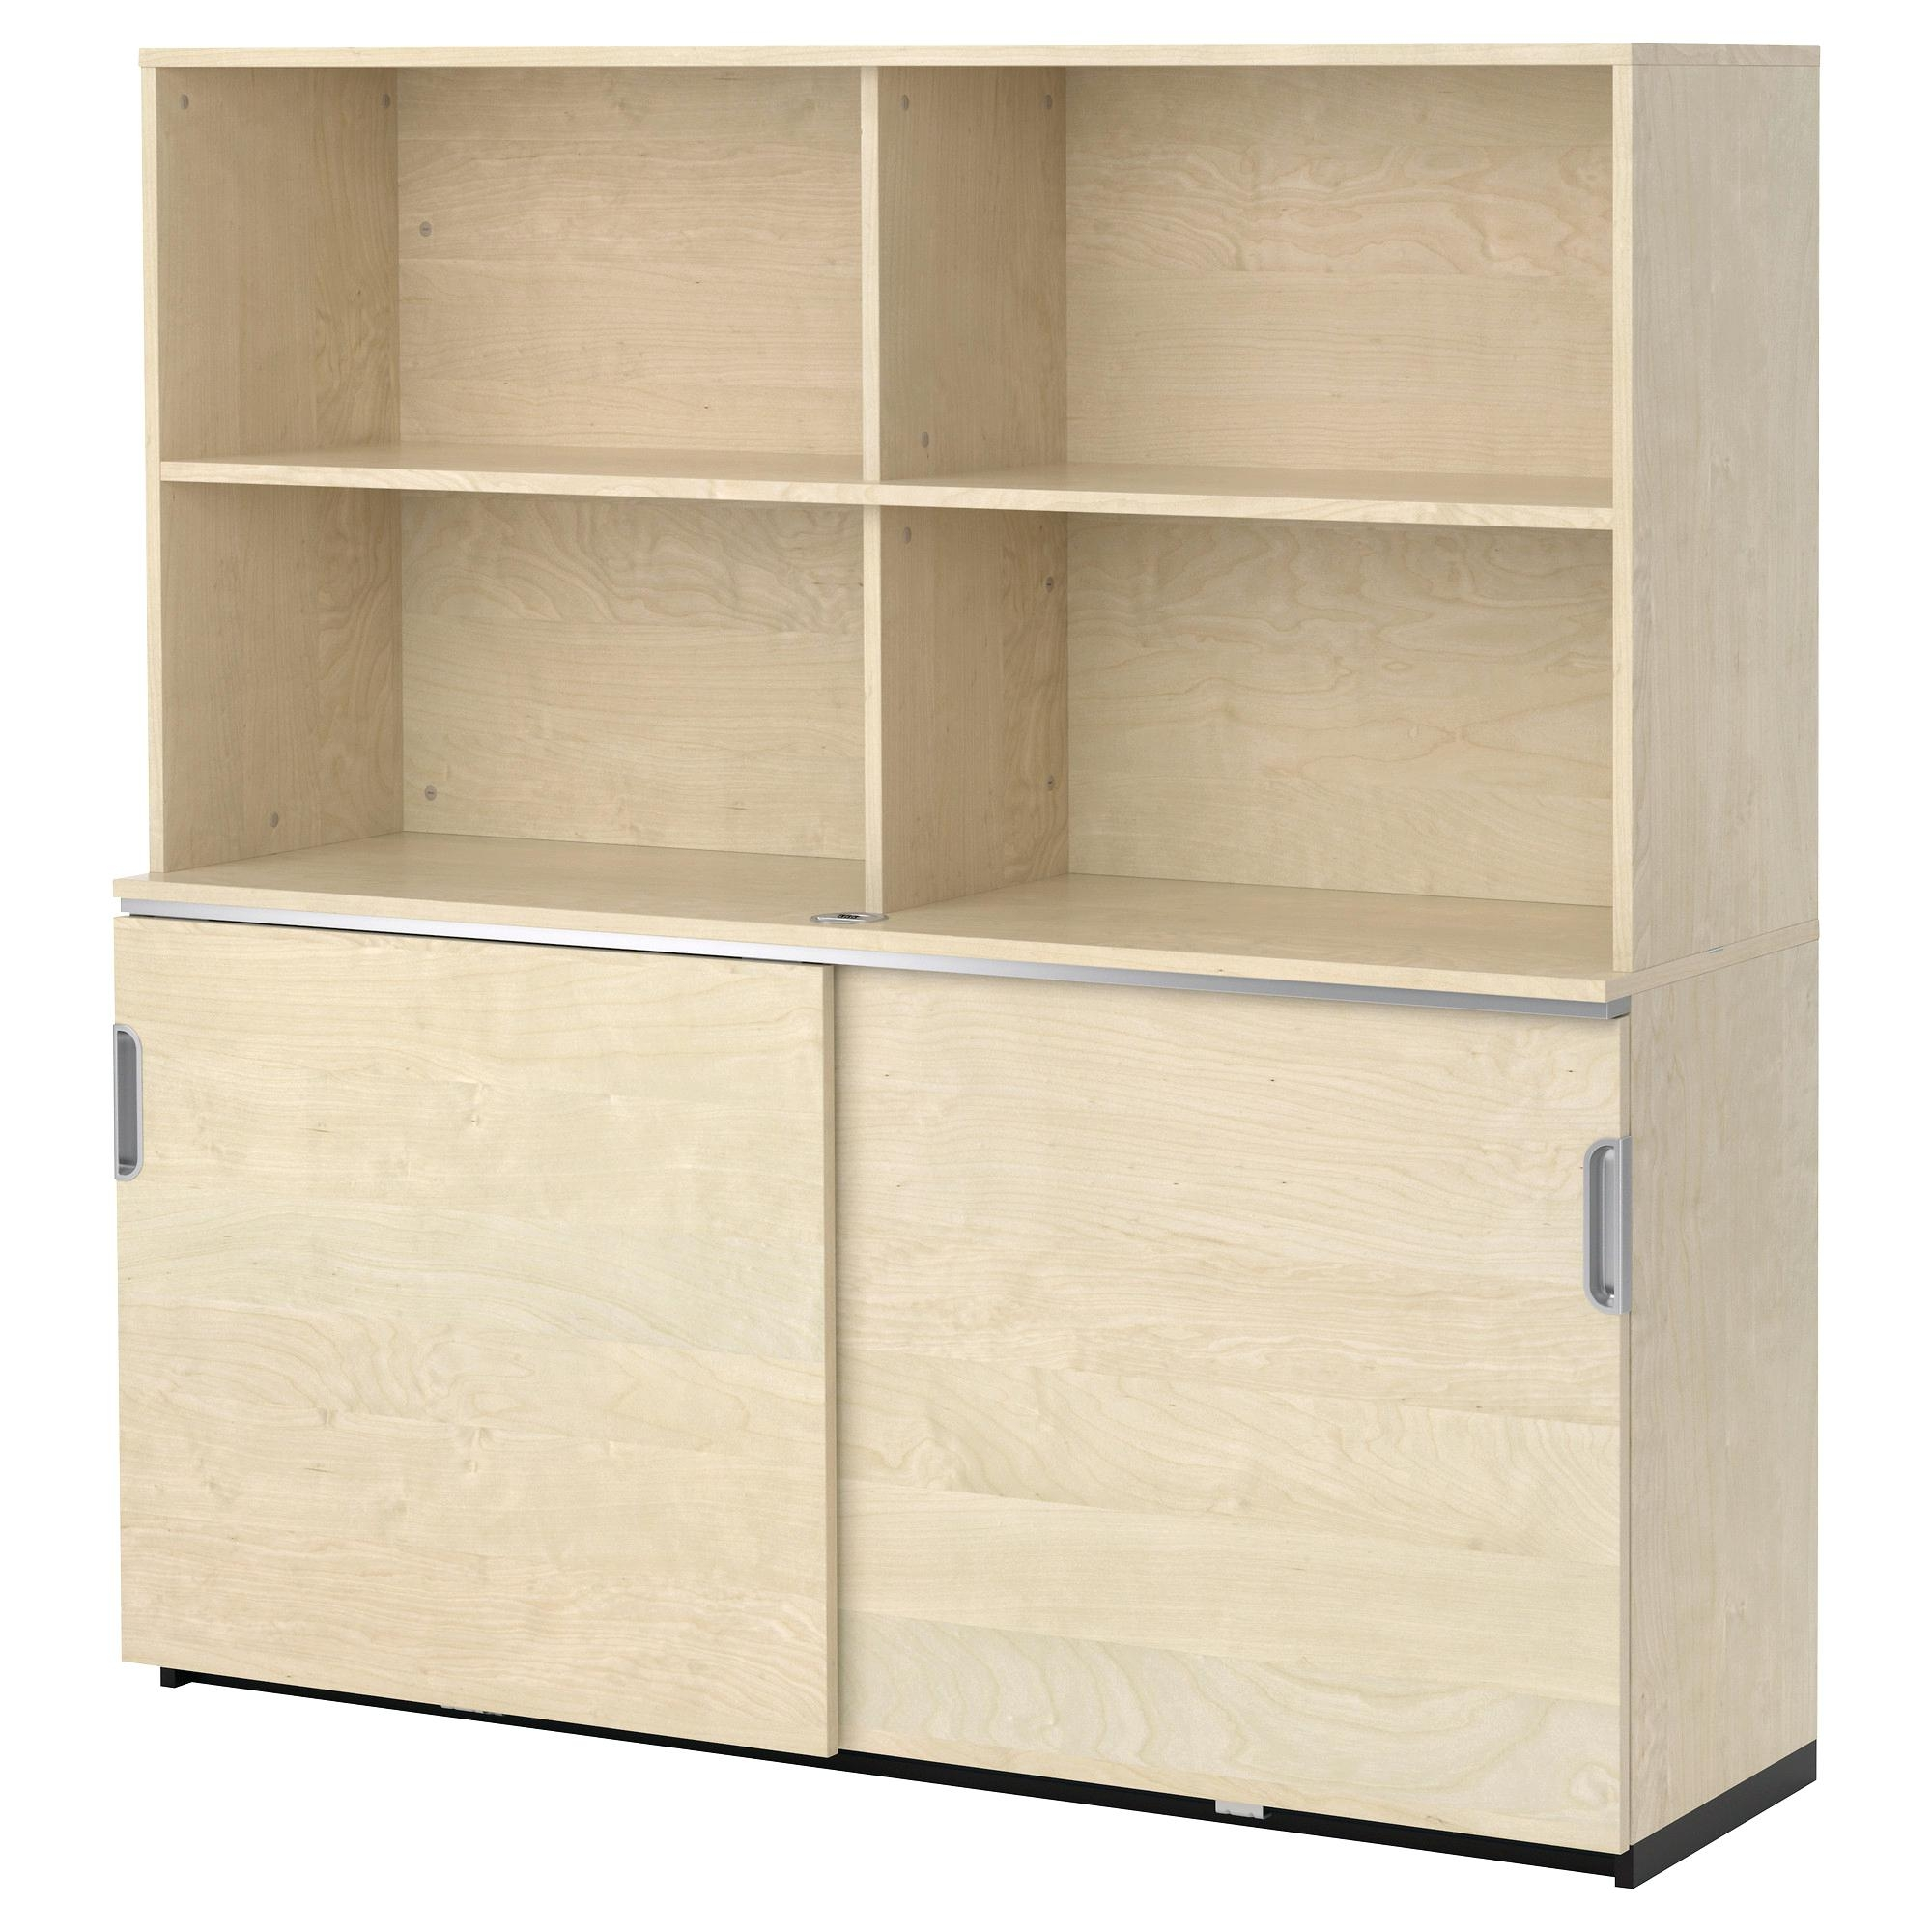 A White Tyngen Bathroom Storage Cabinet With Shelves And Intended For Large Cupboard With Shelves (Image 3 of 25)